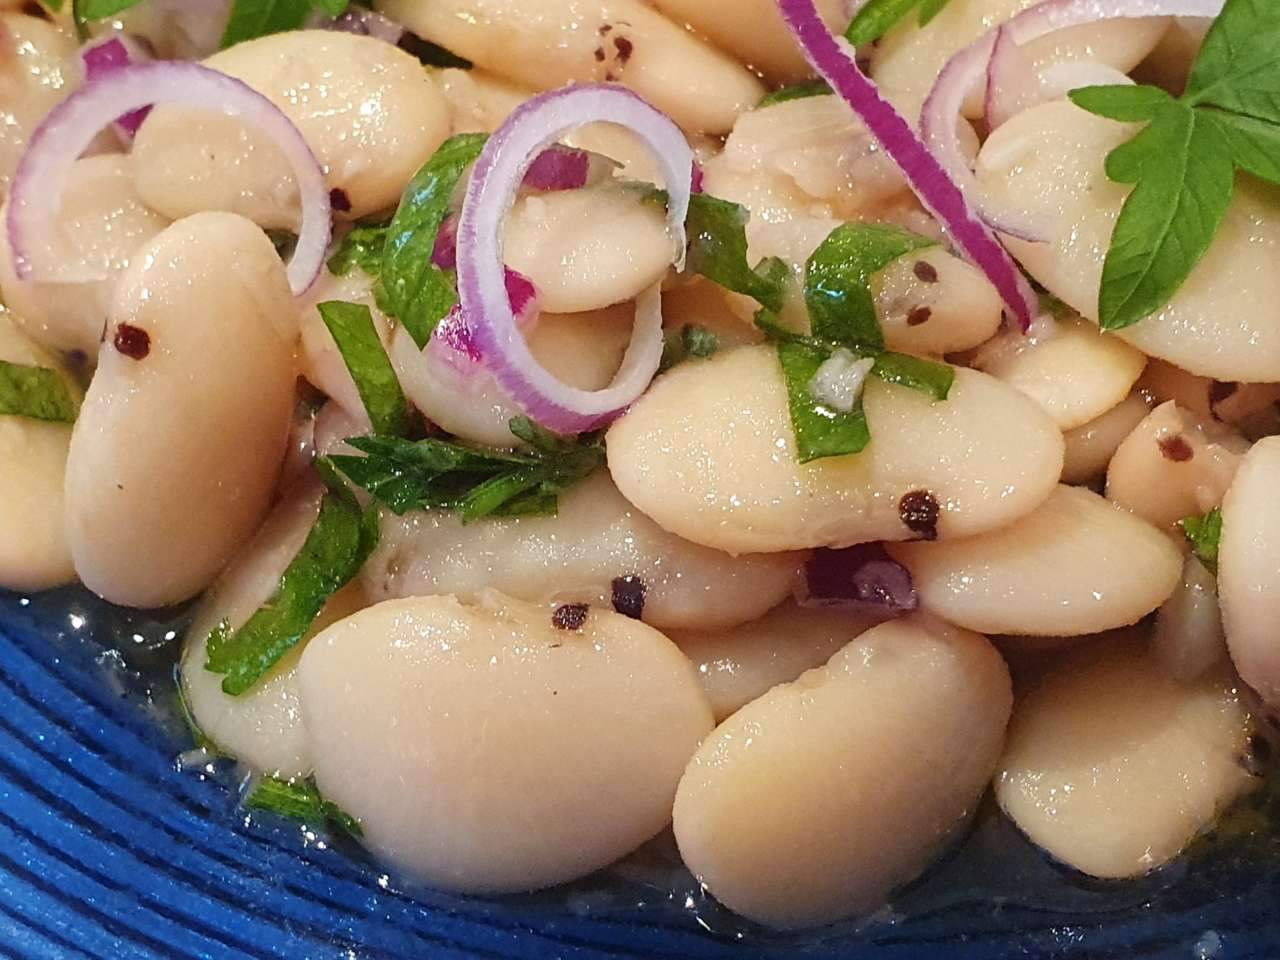 The plain bean salad without the optional additives